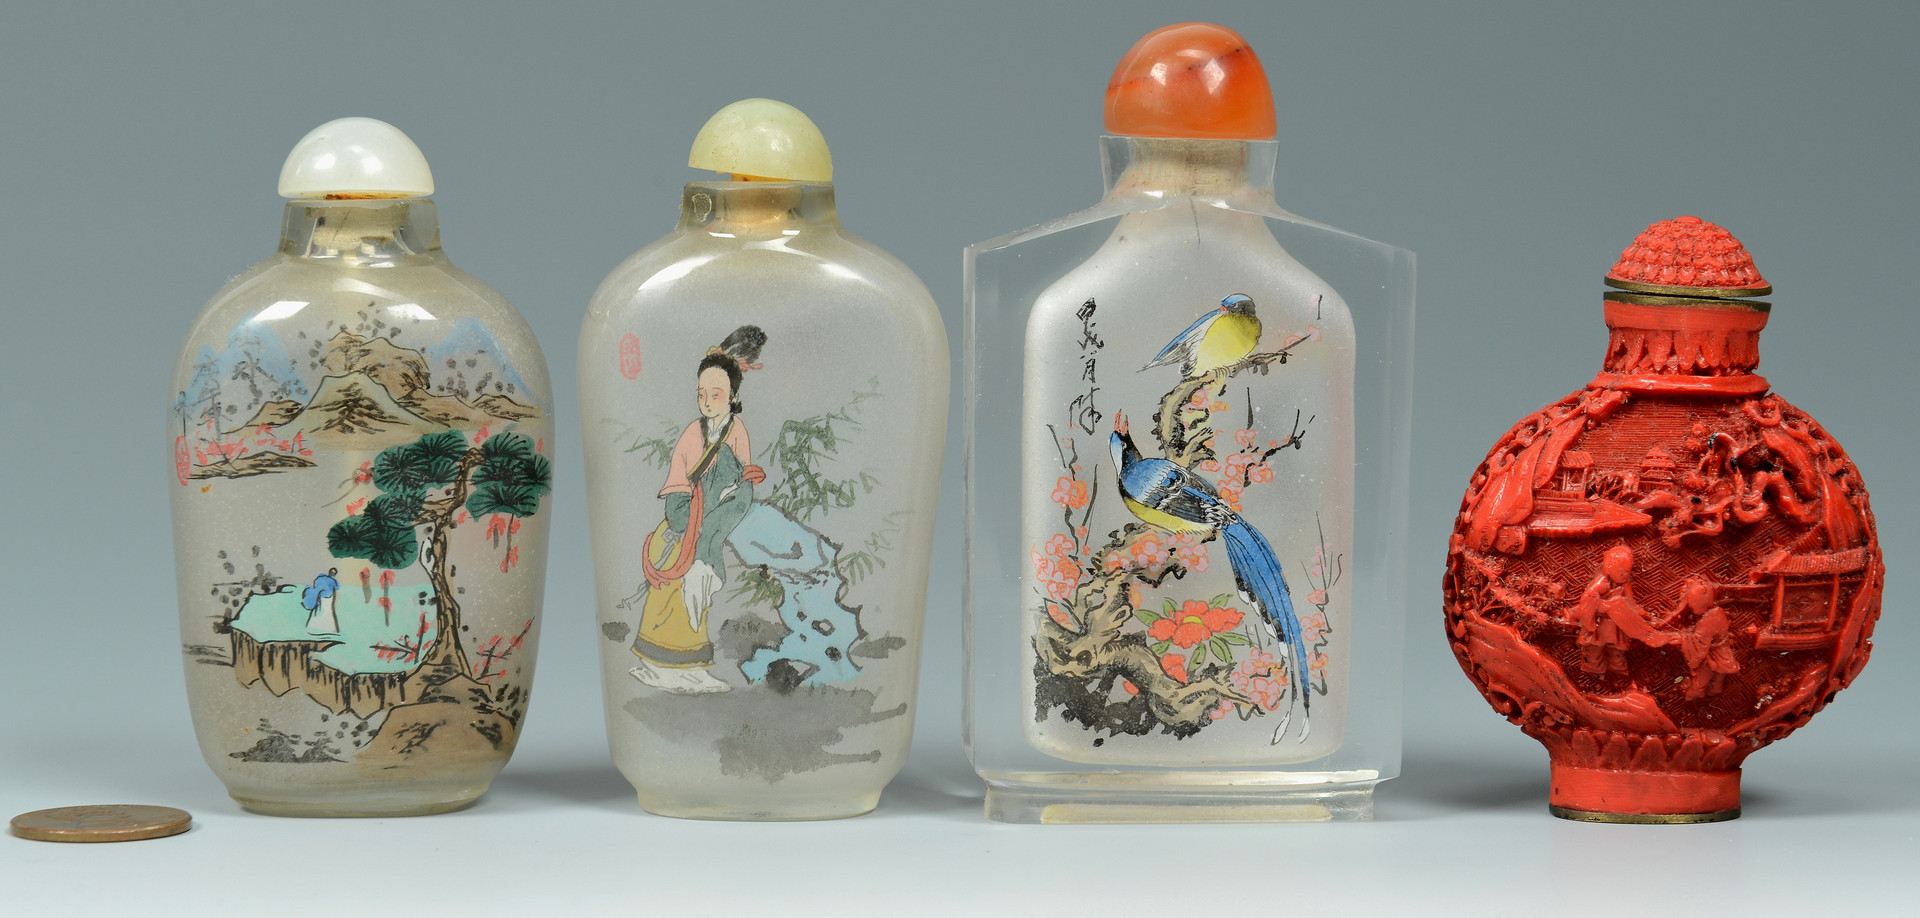 Lot 477: 4 Chinese Snuff Bottles